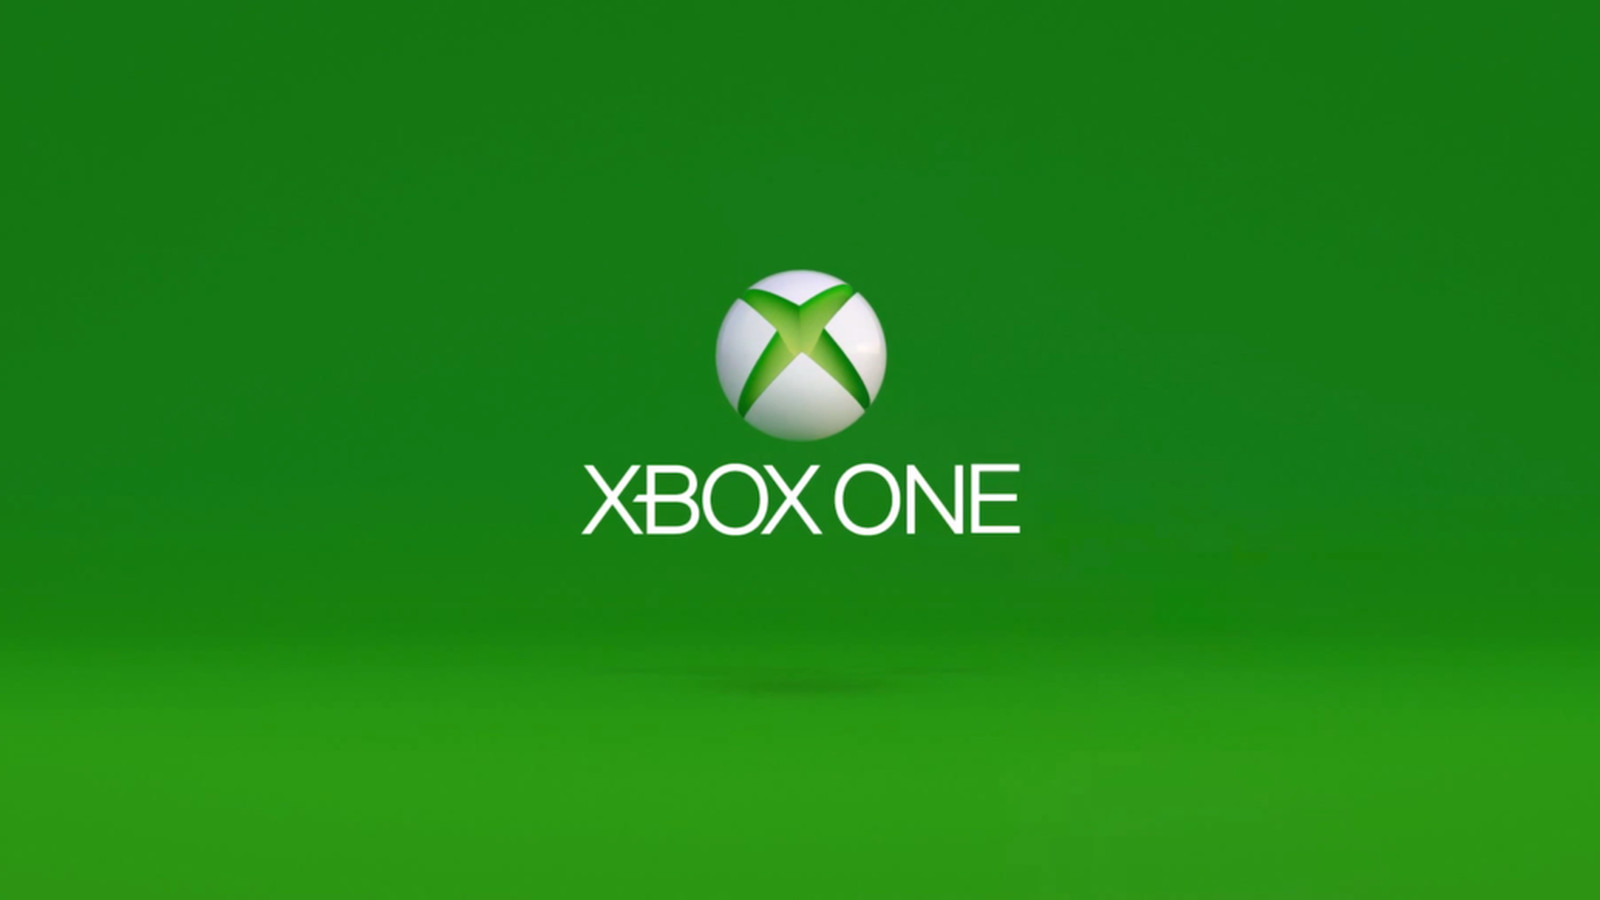 Xbox One Wallpapers: Microsoft Explains The Design Of The Xbox One